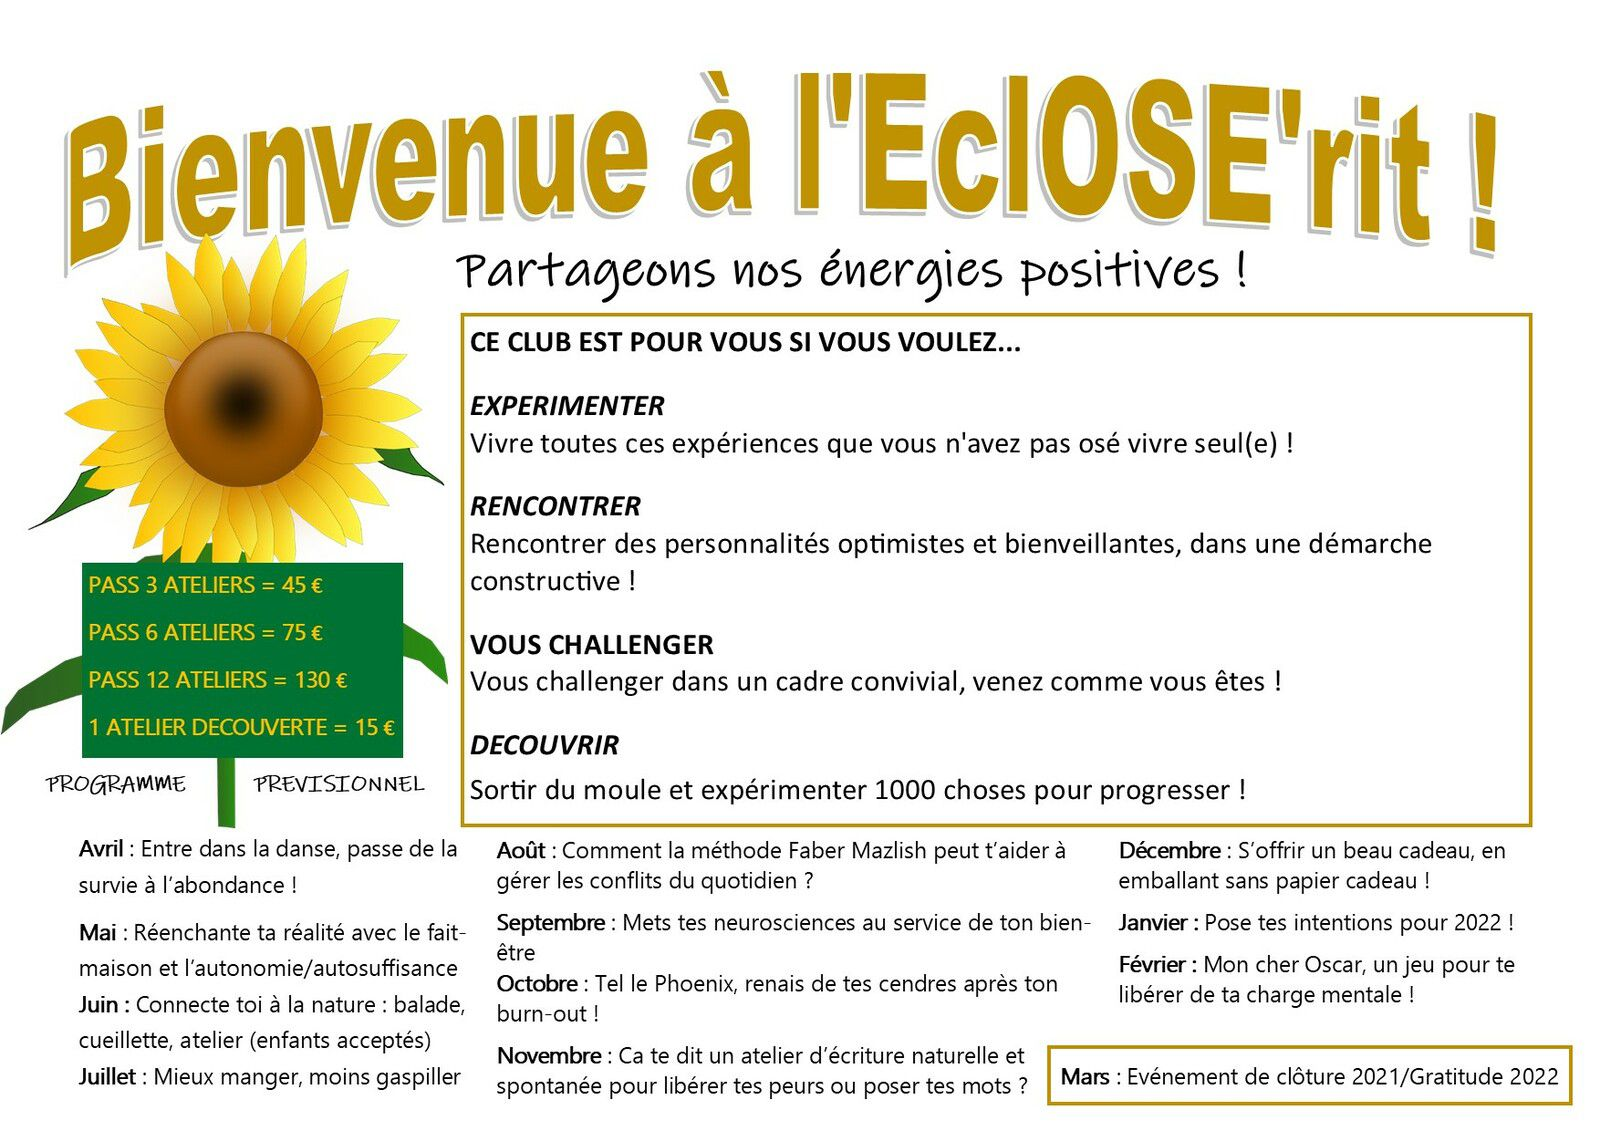 L'EclOSE'rit : Le Club inspirant et optimiste